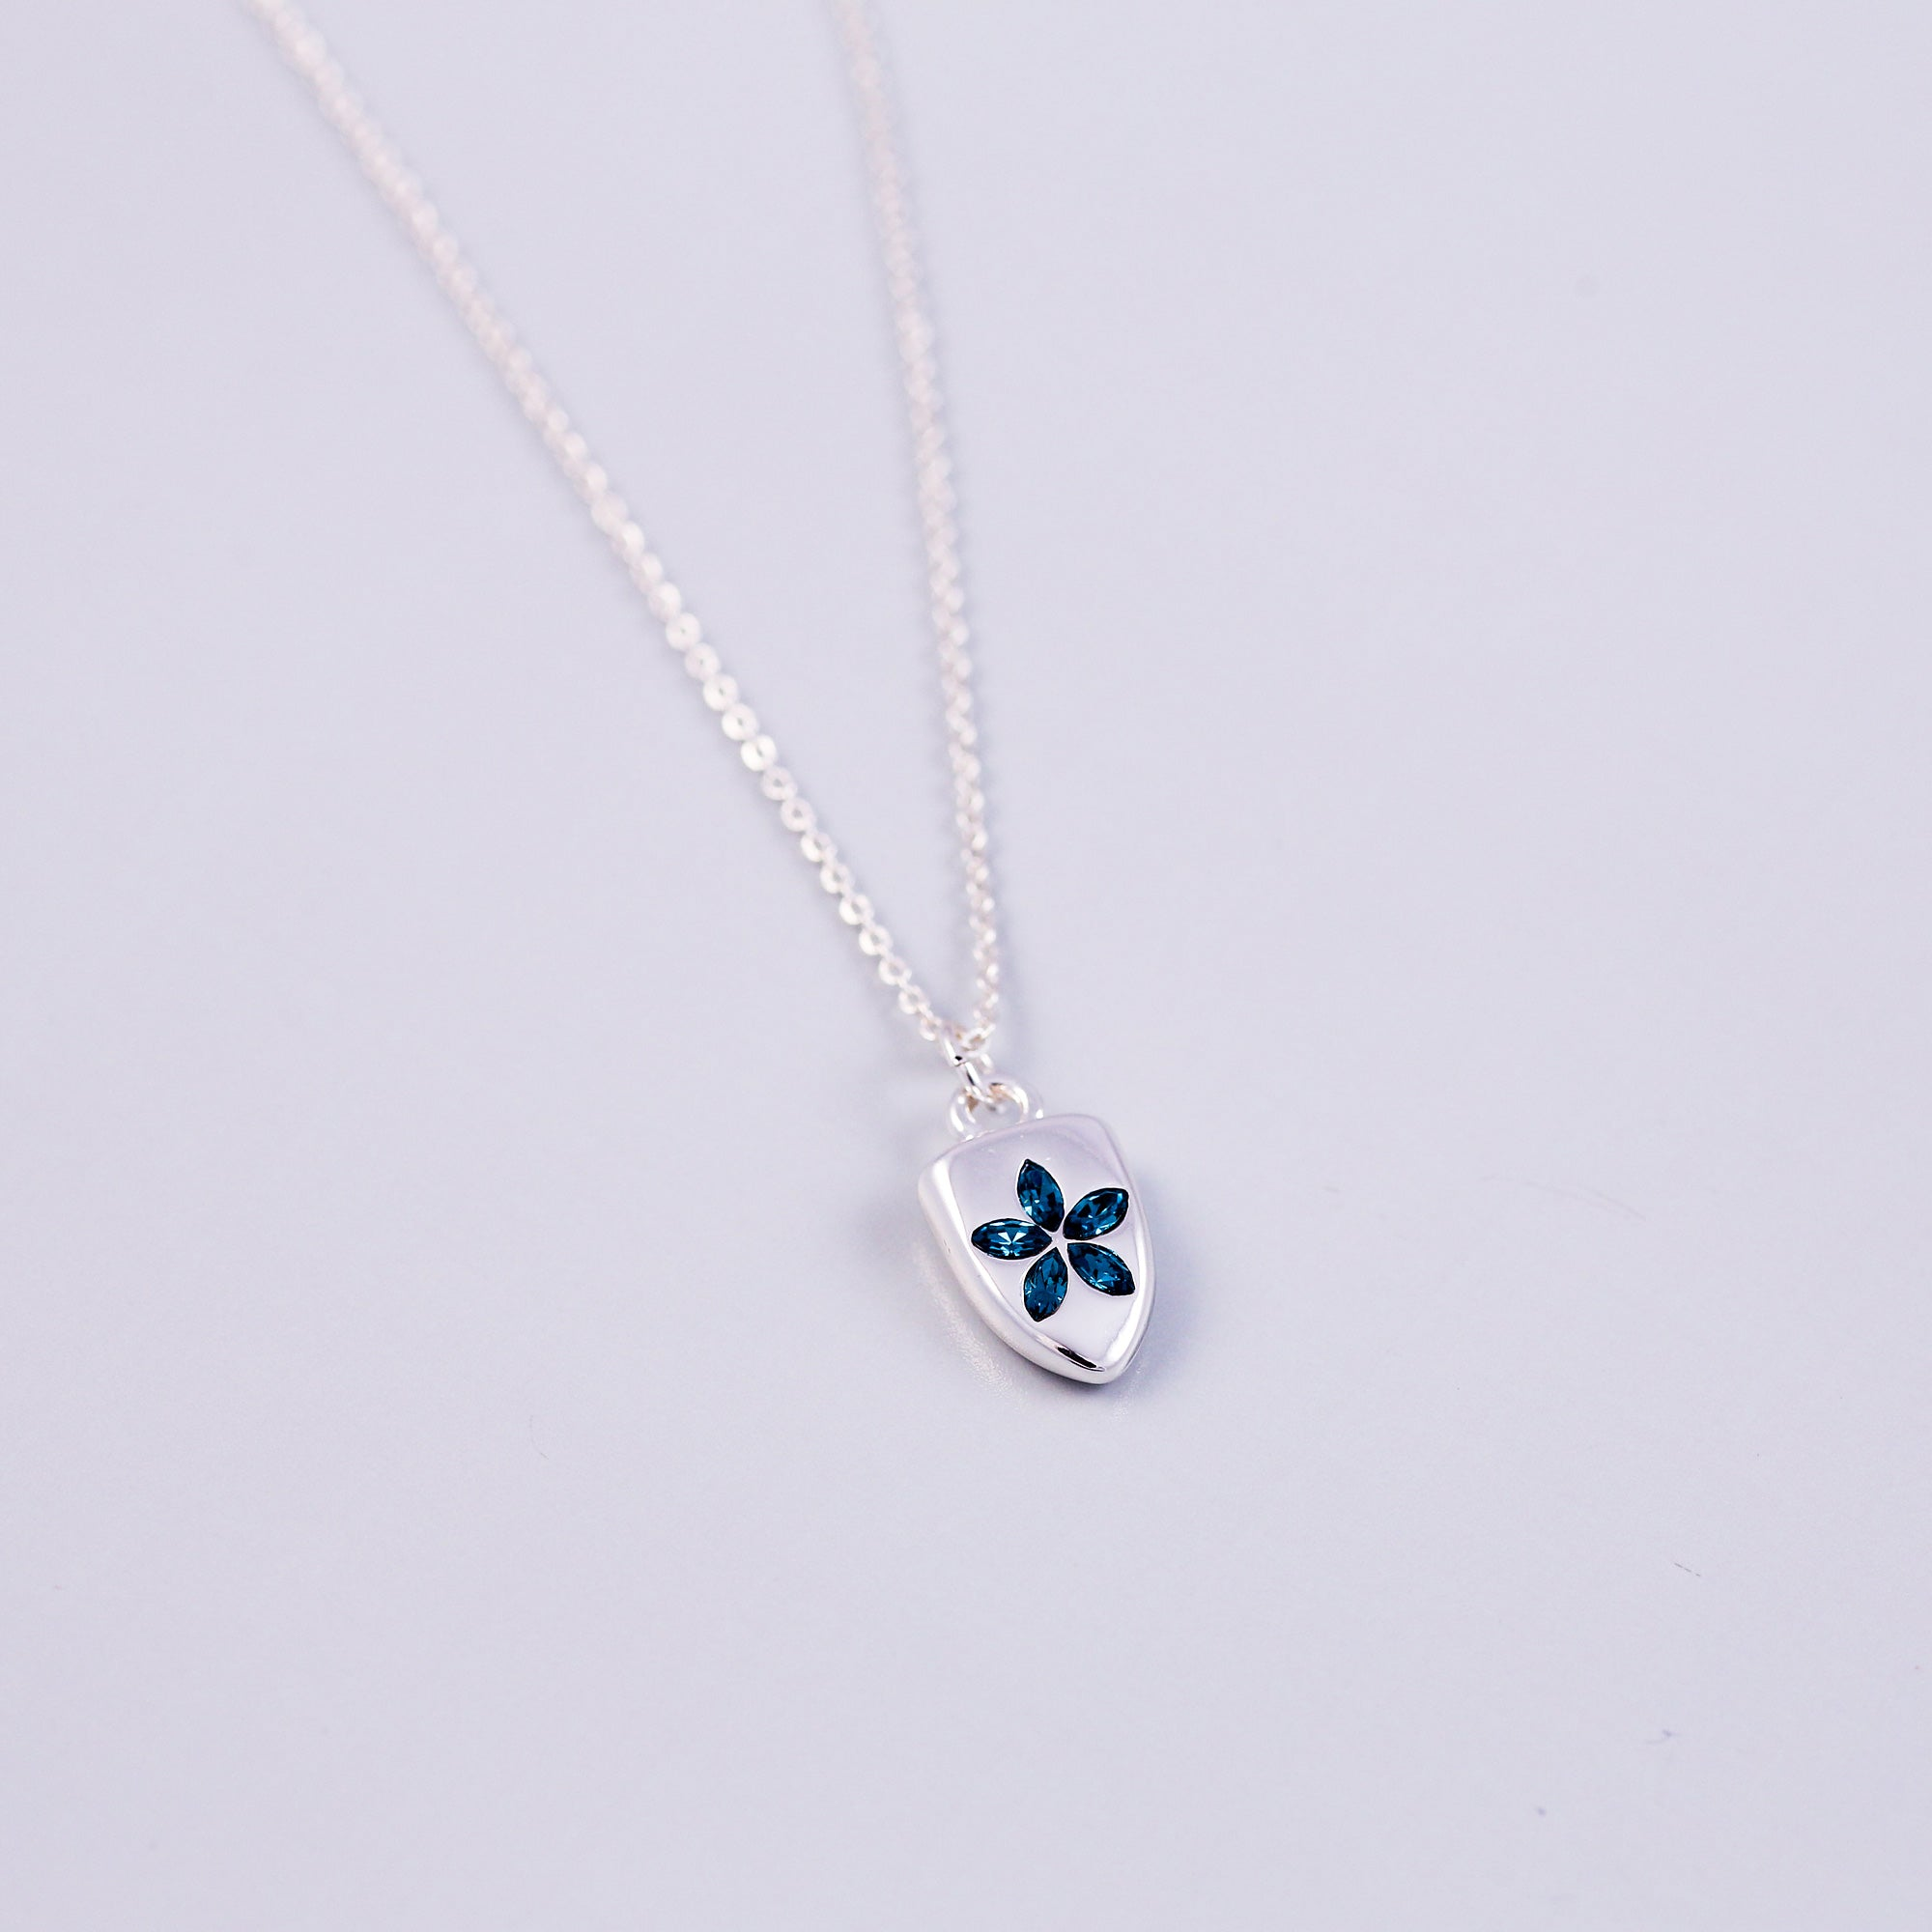 Silver & Blue Crystal Flower Shield Necklace